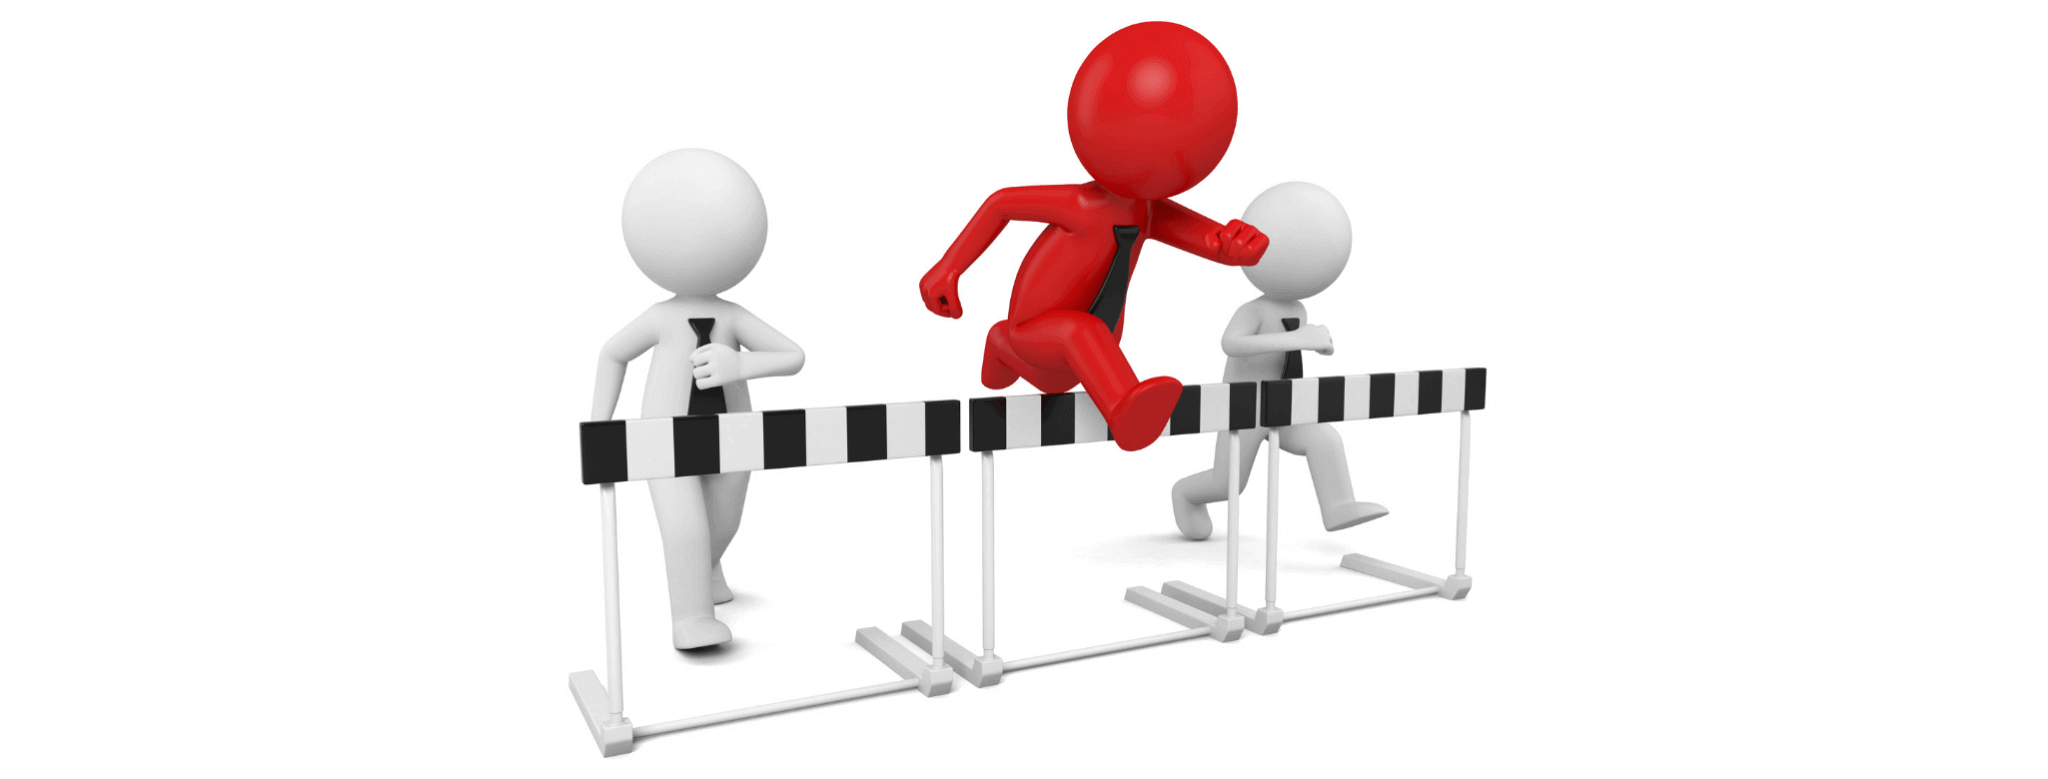 Hurdles in the success pathway OpenGrowth